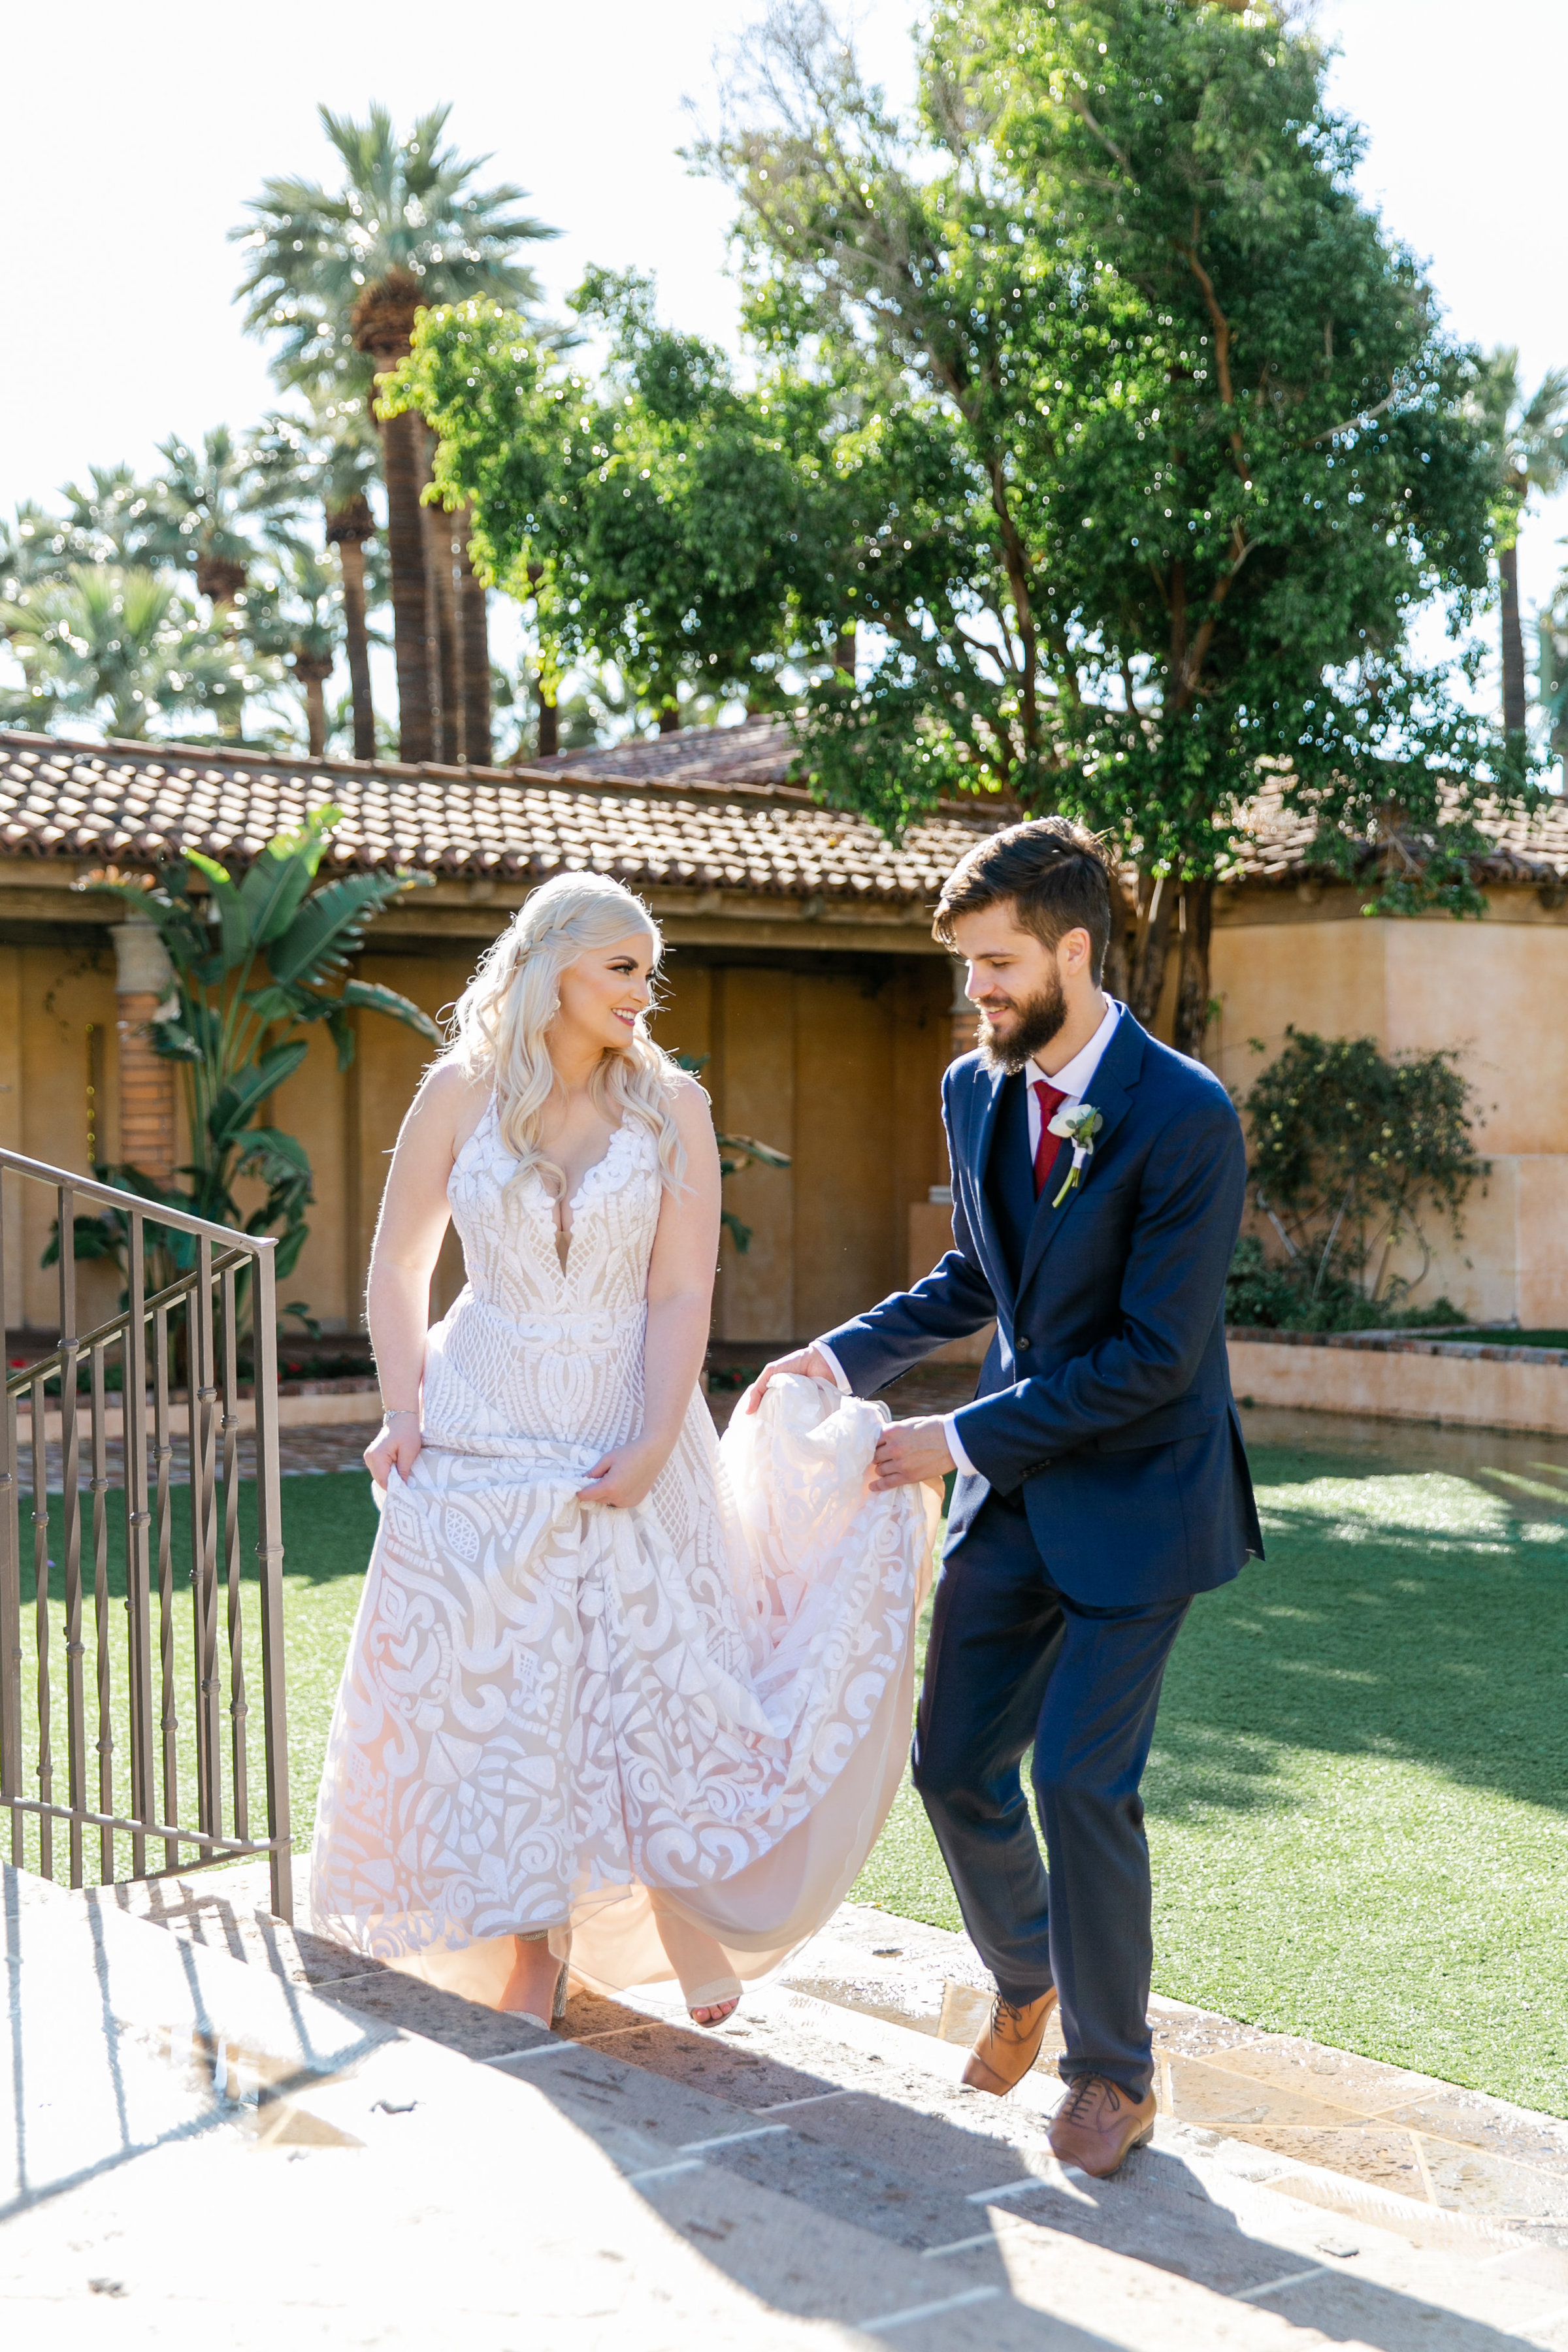 Karlie Colleen Photography - The Royal Palms Wedding - Some Like It Classic - Alex & Sam-176